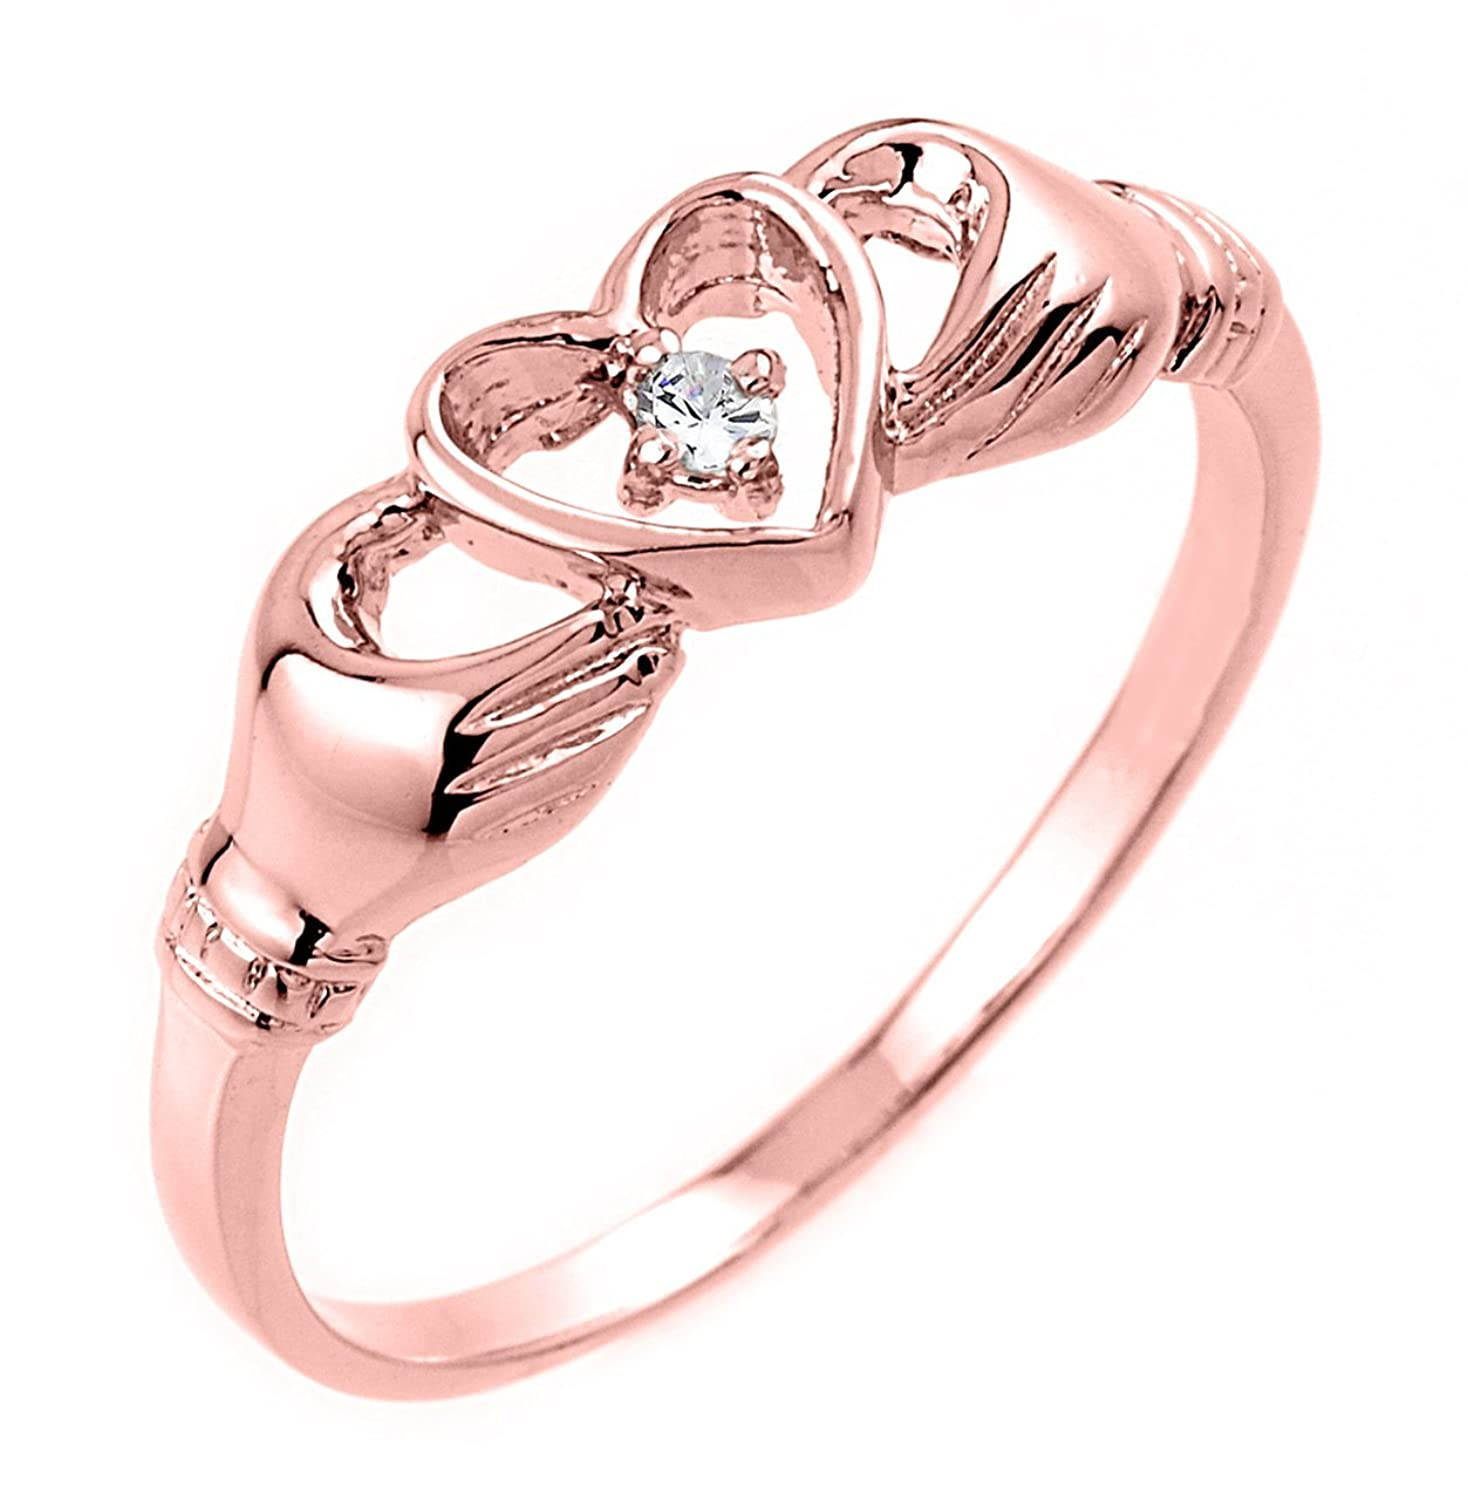 Unique Gold Diamond Claddagh Ring - Best Jewelry